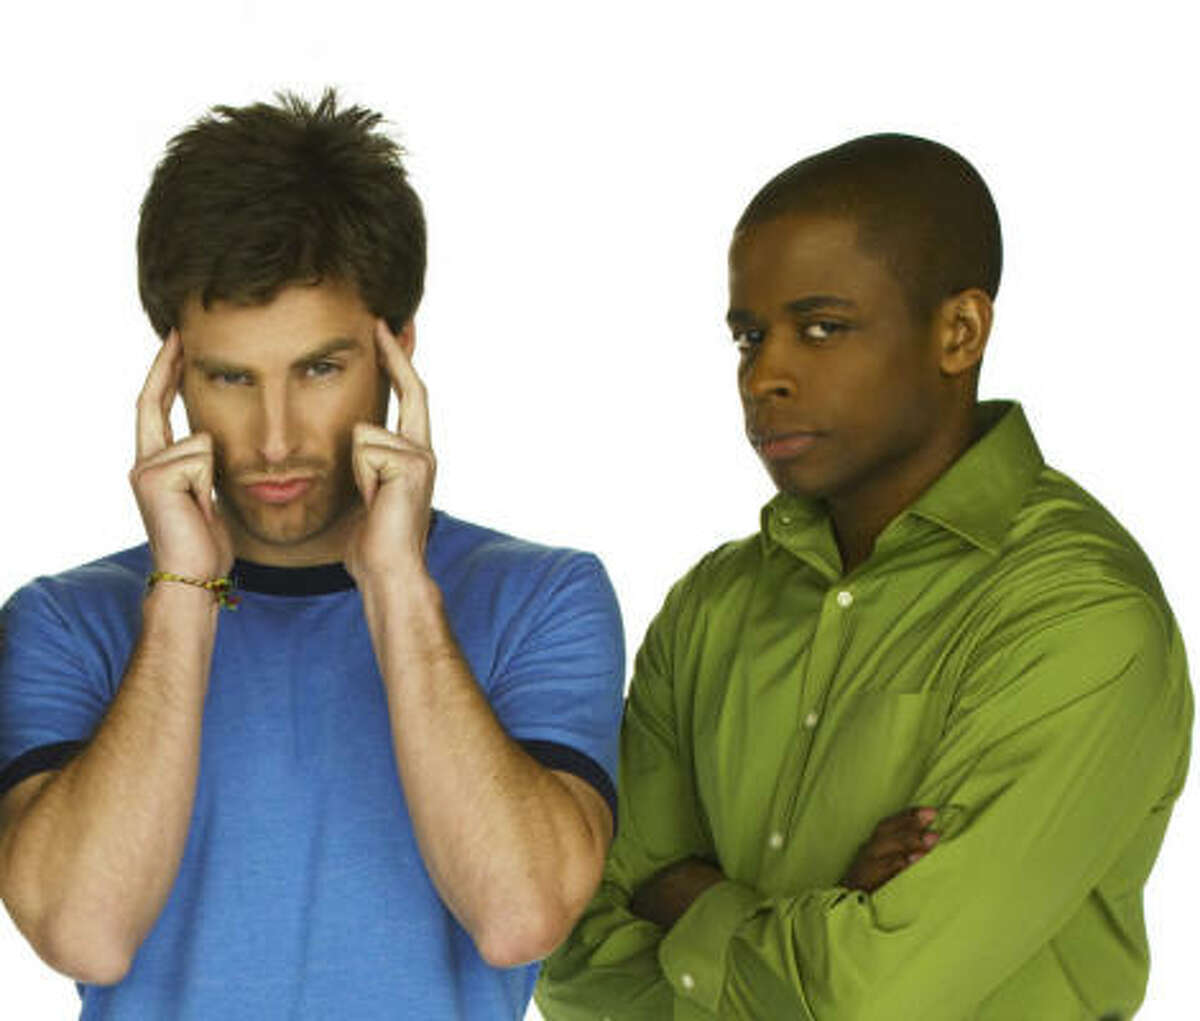 Shawn (James Roday, center) has extraordinary recall powers, which and bet friend Gus (Dule Hill, right) put to good use at their detective agency in the new USA Network series Psych.